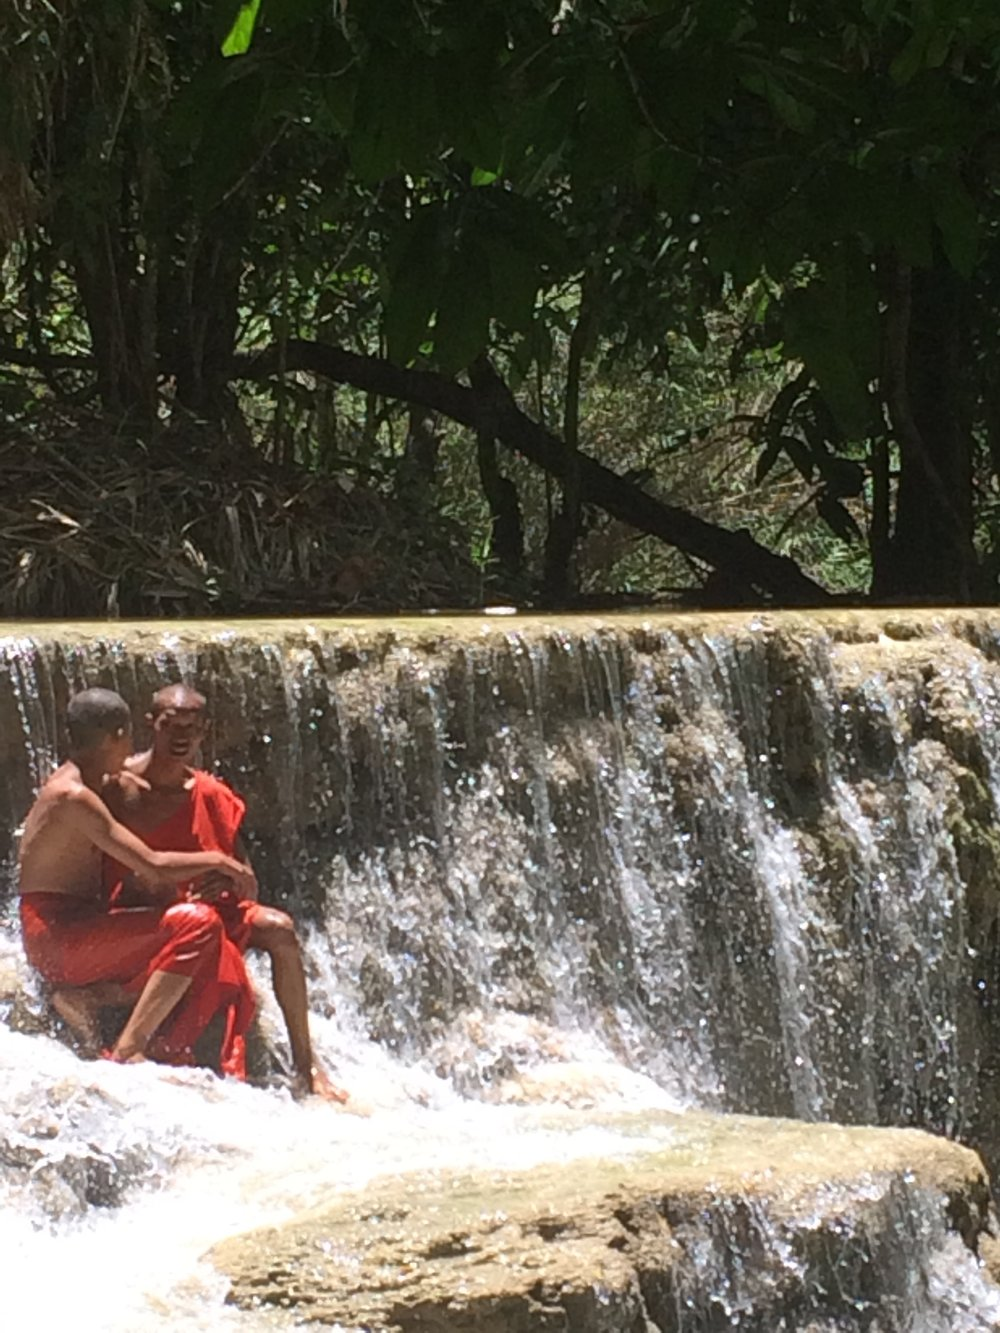 Monks at the Luang Prabang falls.